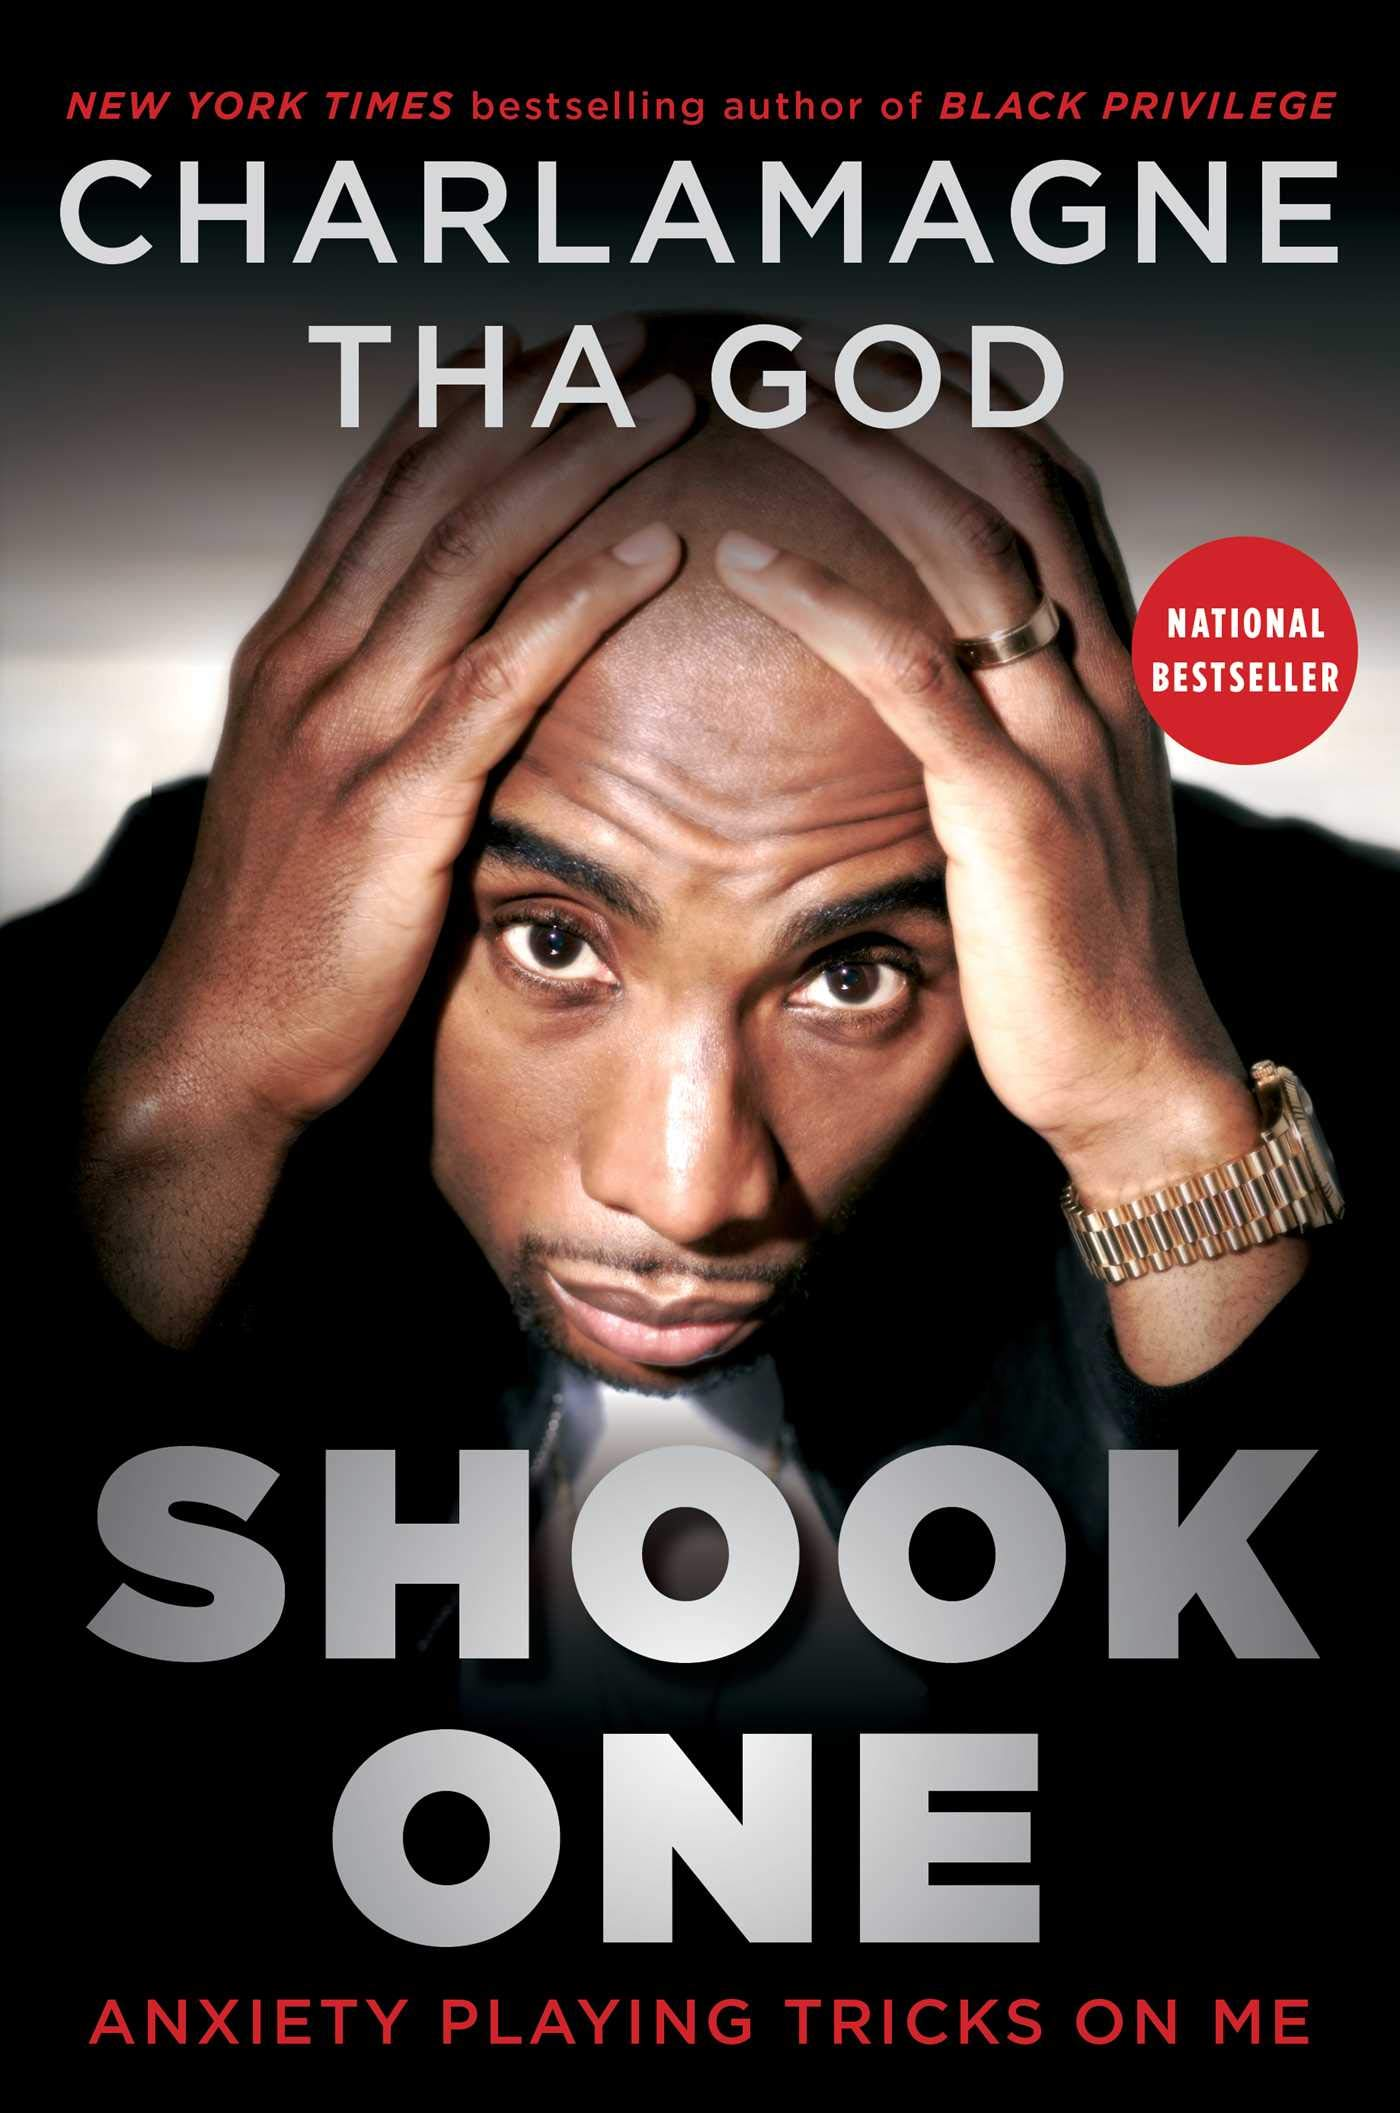 Paperback Launch: Shook One by Charlamagne Tha God in conversation with Dr. Jessica Clemons